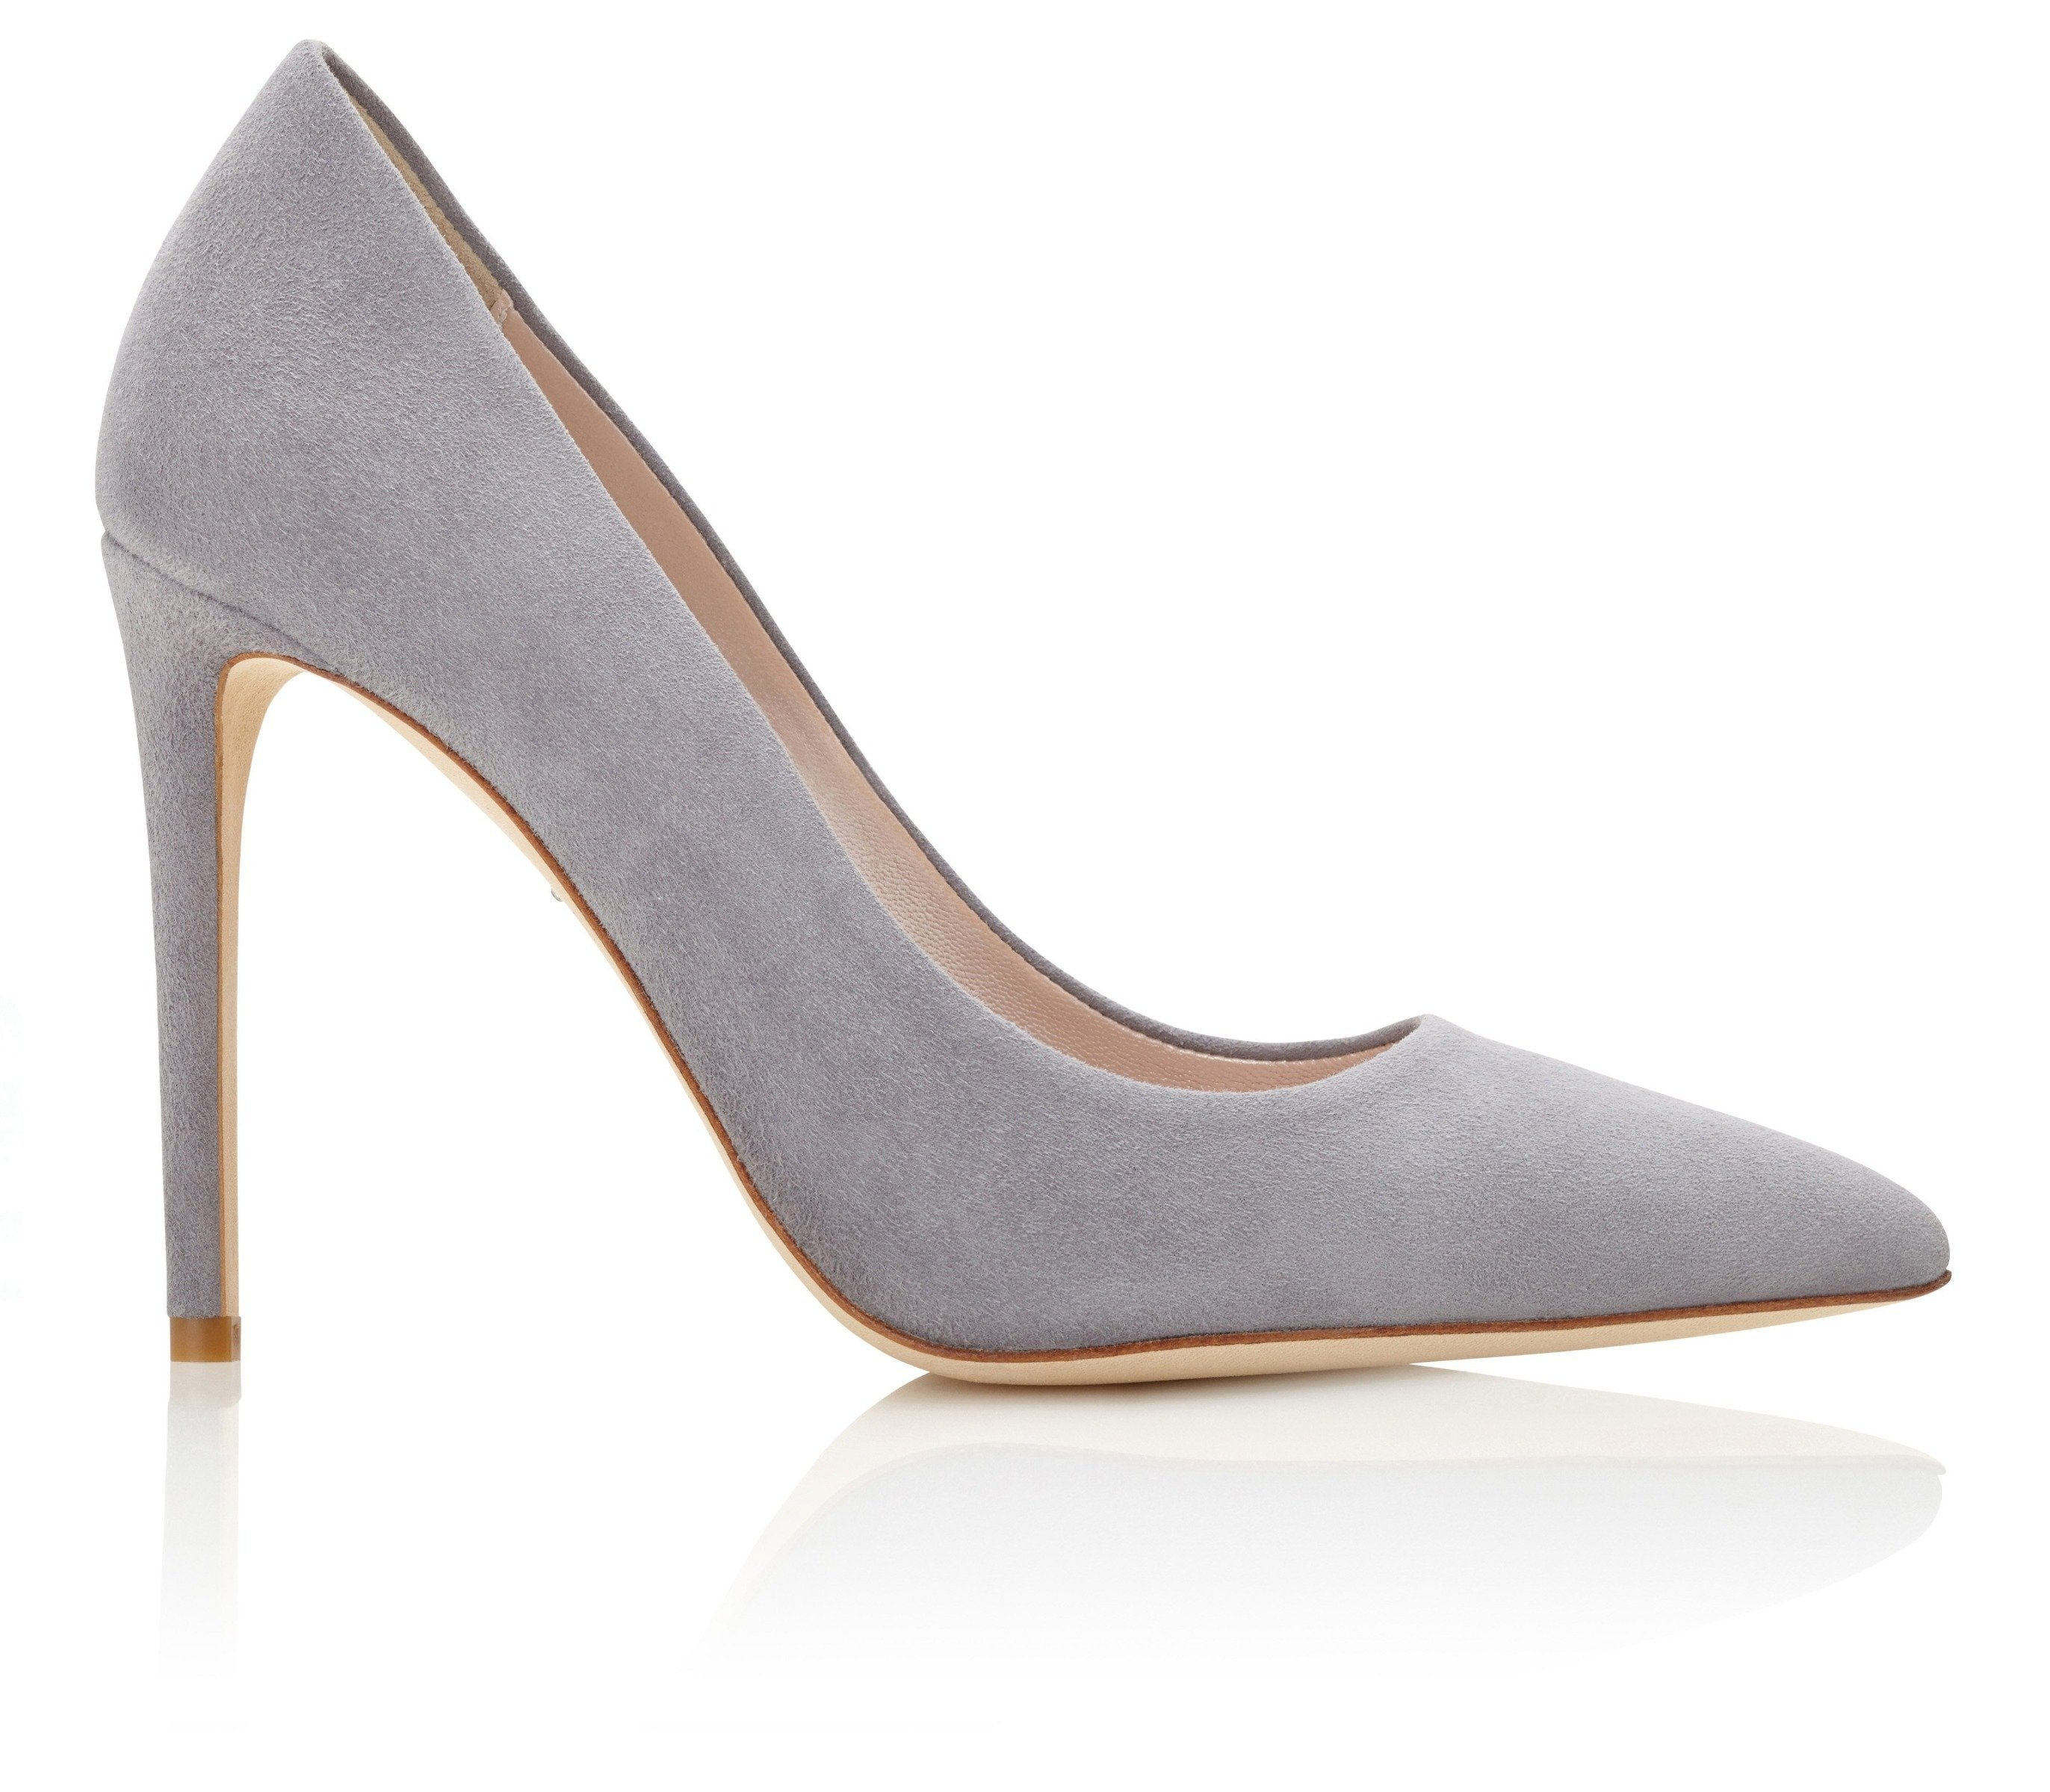 3dc5c750c40 ... Rebecca Steel Grey Suede Court Shoes Created by Emmy London ...